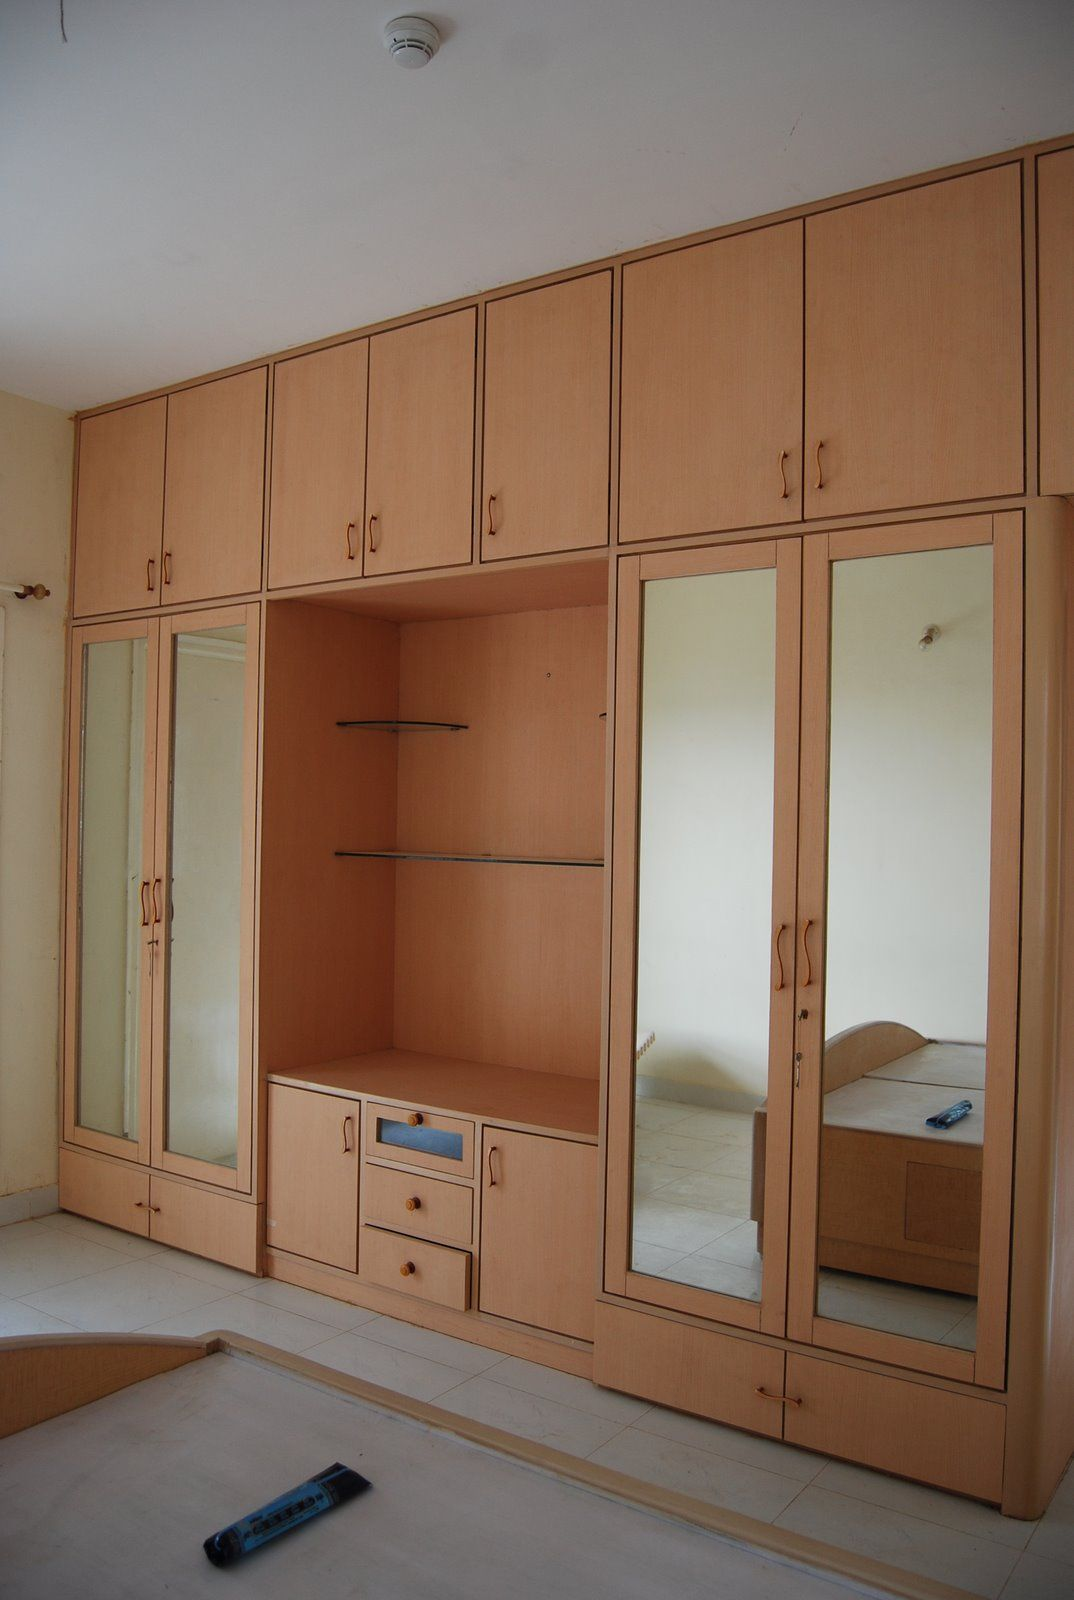 Bedroom Wardrobe Design. Tips For Wardrobe Design. Brown Polished ...